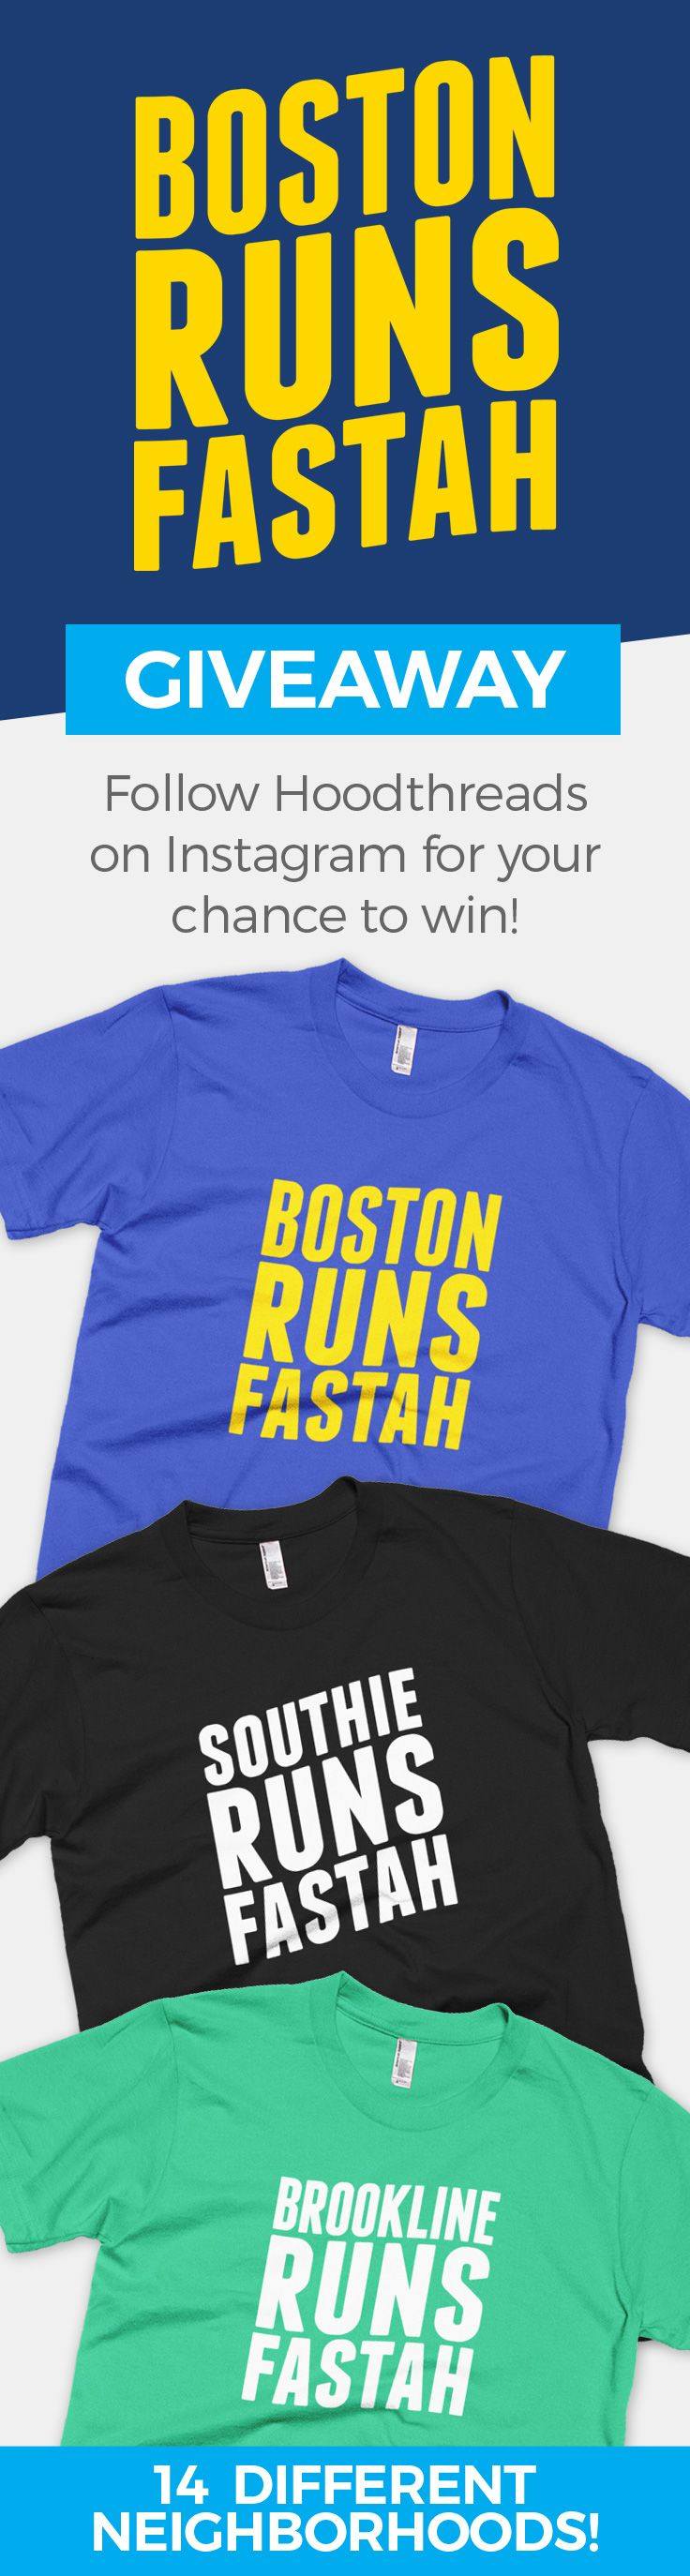 16 Best Cool Womens Tee Images On Pinterest Crew Sweatshirts Badly Drawn Tshirt Short Circuit Mens Buy Online At Grindstore Enter To Win A Boston Runs Fastah T Shirt From Hoodthreads